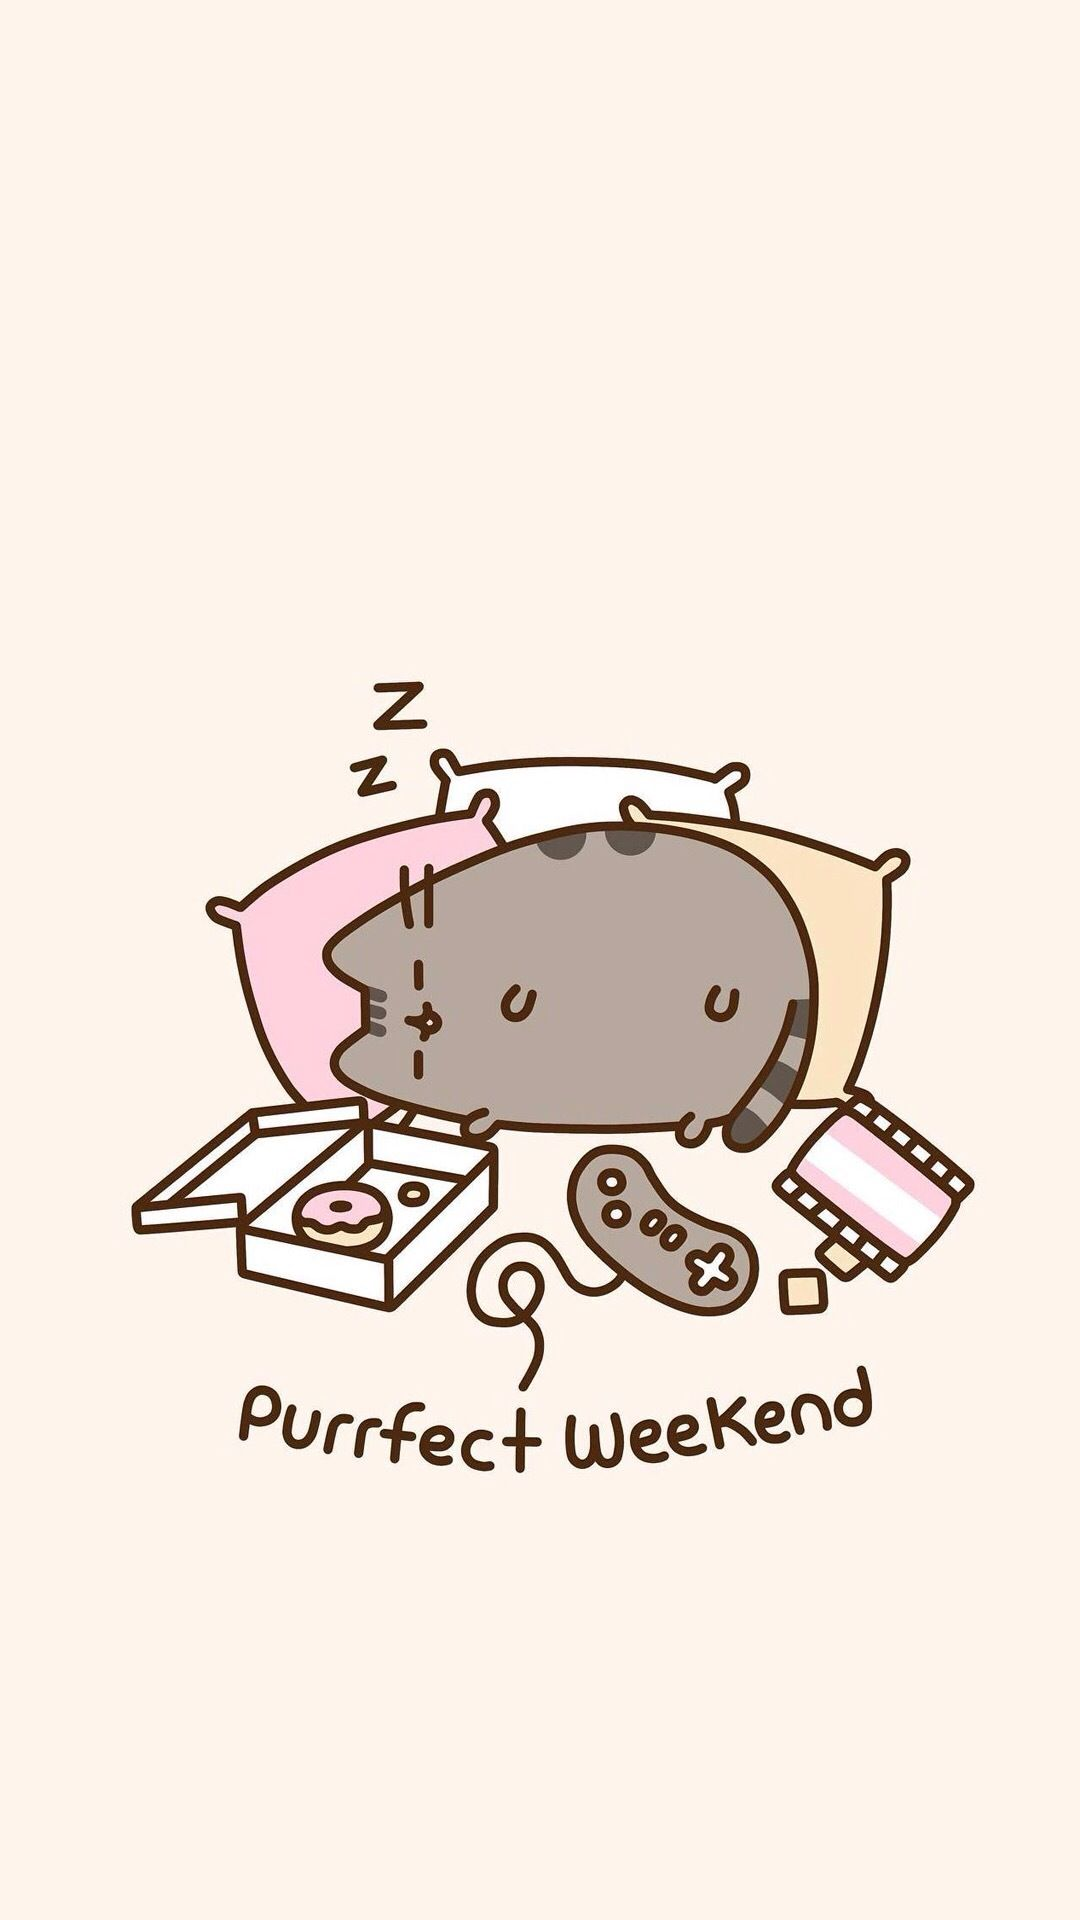 Phone Wallpapers, Hd Wallpaper, Kawaii Wallpaper, Weekend Vibes, Pusheen  Cat, Gifts, Throw Blankets, Hot Topic, Presents